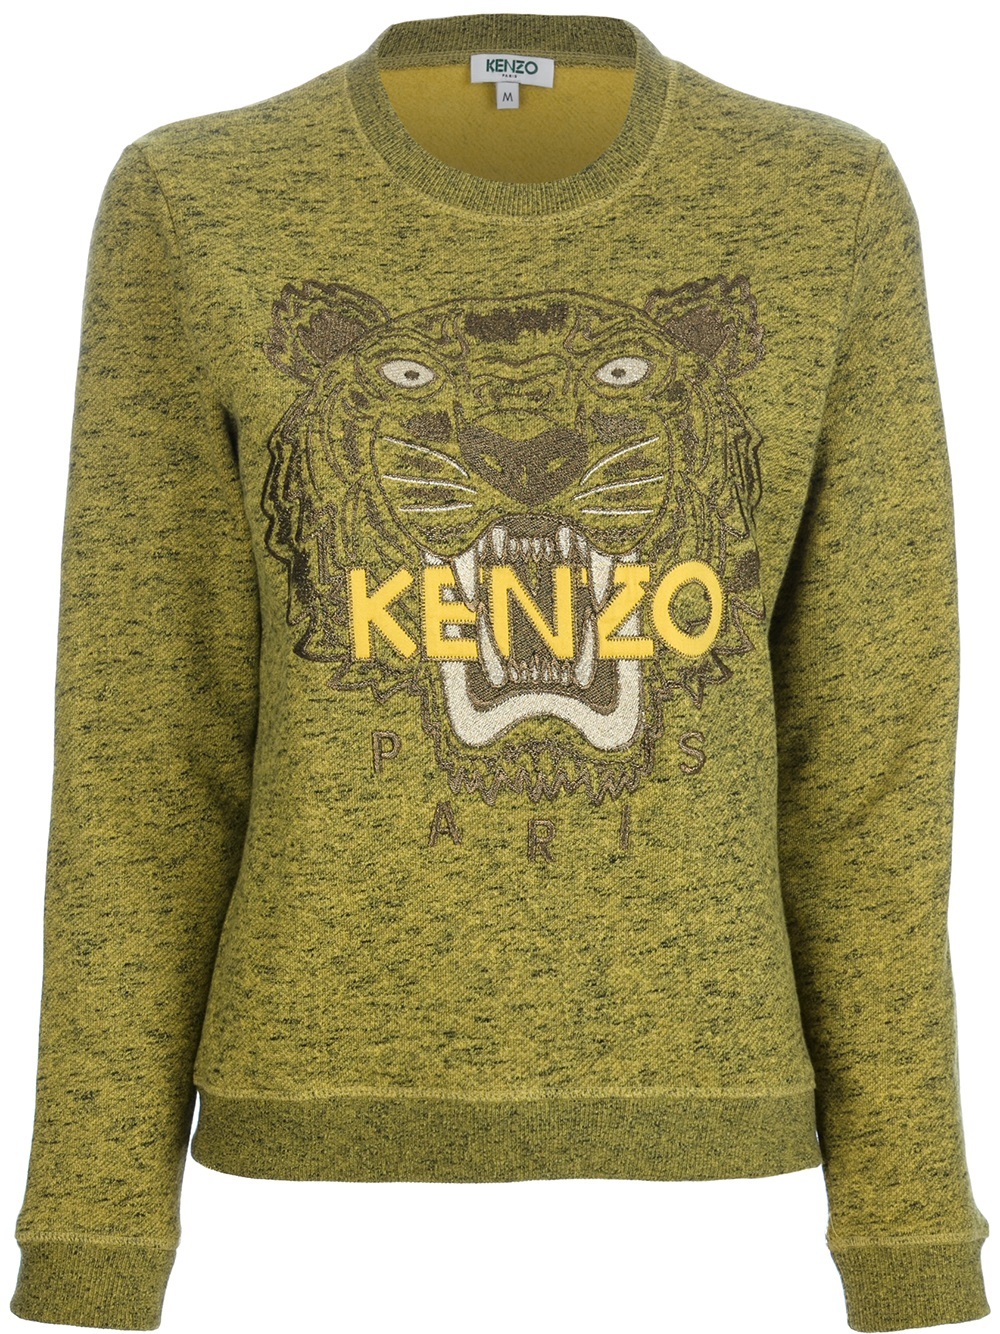 63097e6f KENZO Embroidered Tiger Sweater in Green - Lyst